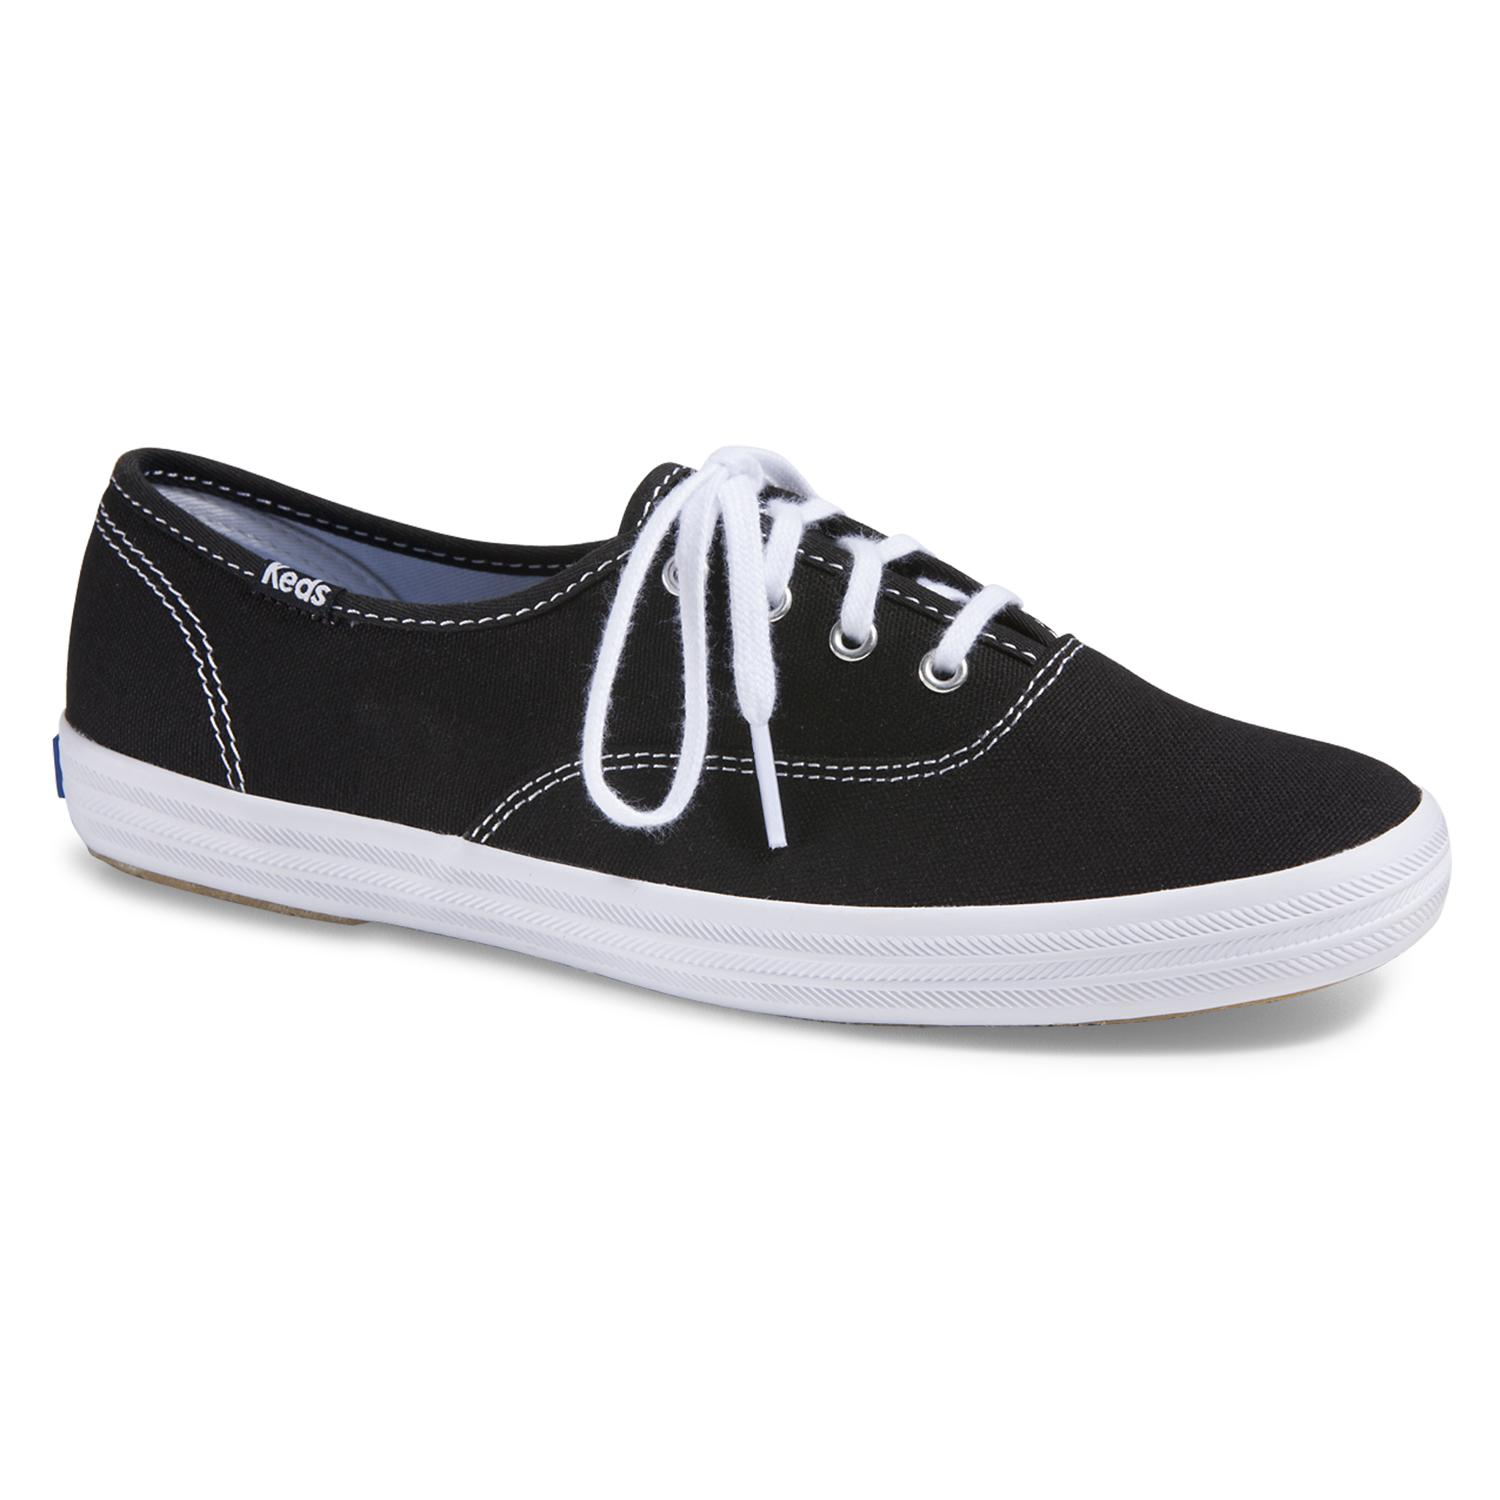 Keds Champion Originals Canvas Sneaker Best Price